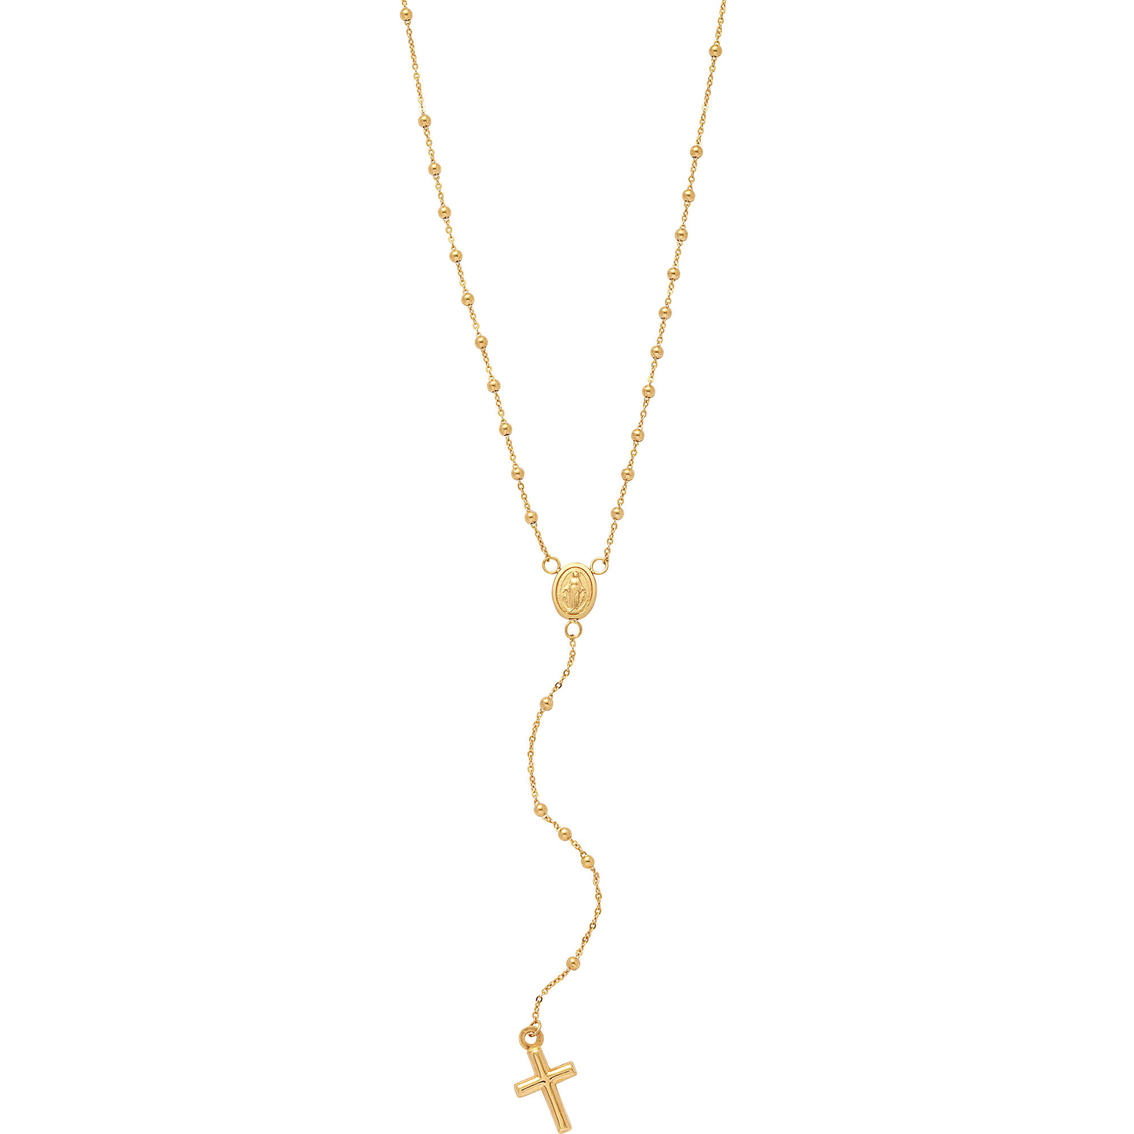 10k Yellow Gold Rosary Necklace Gold Necklaces Pendants Gifts